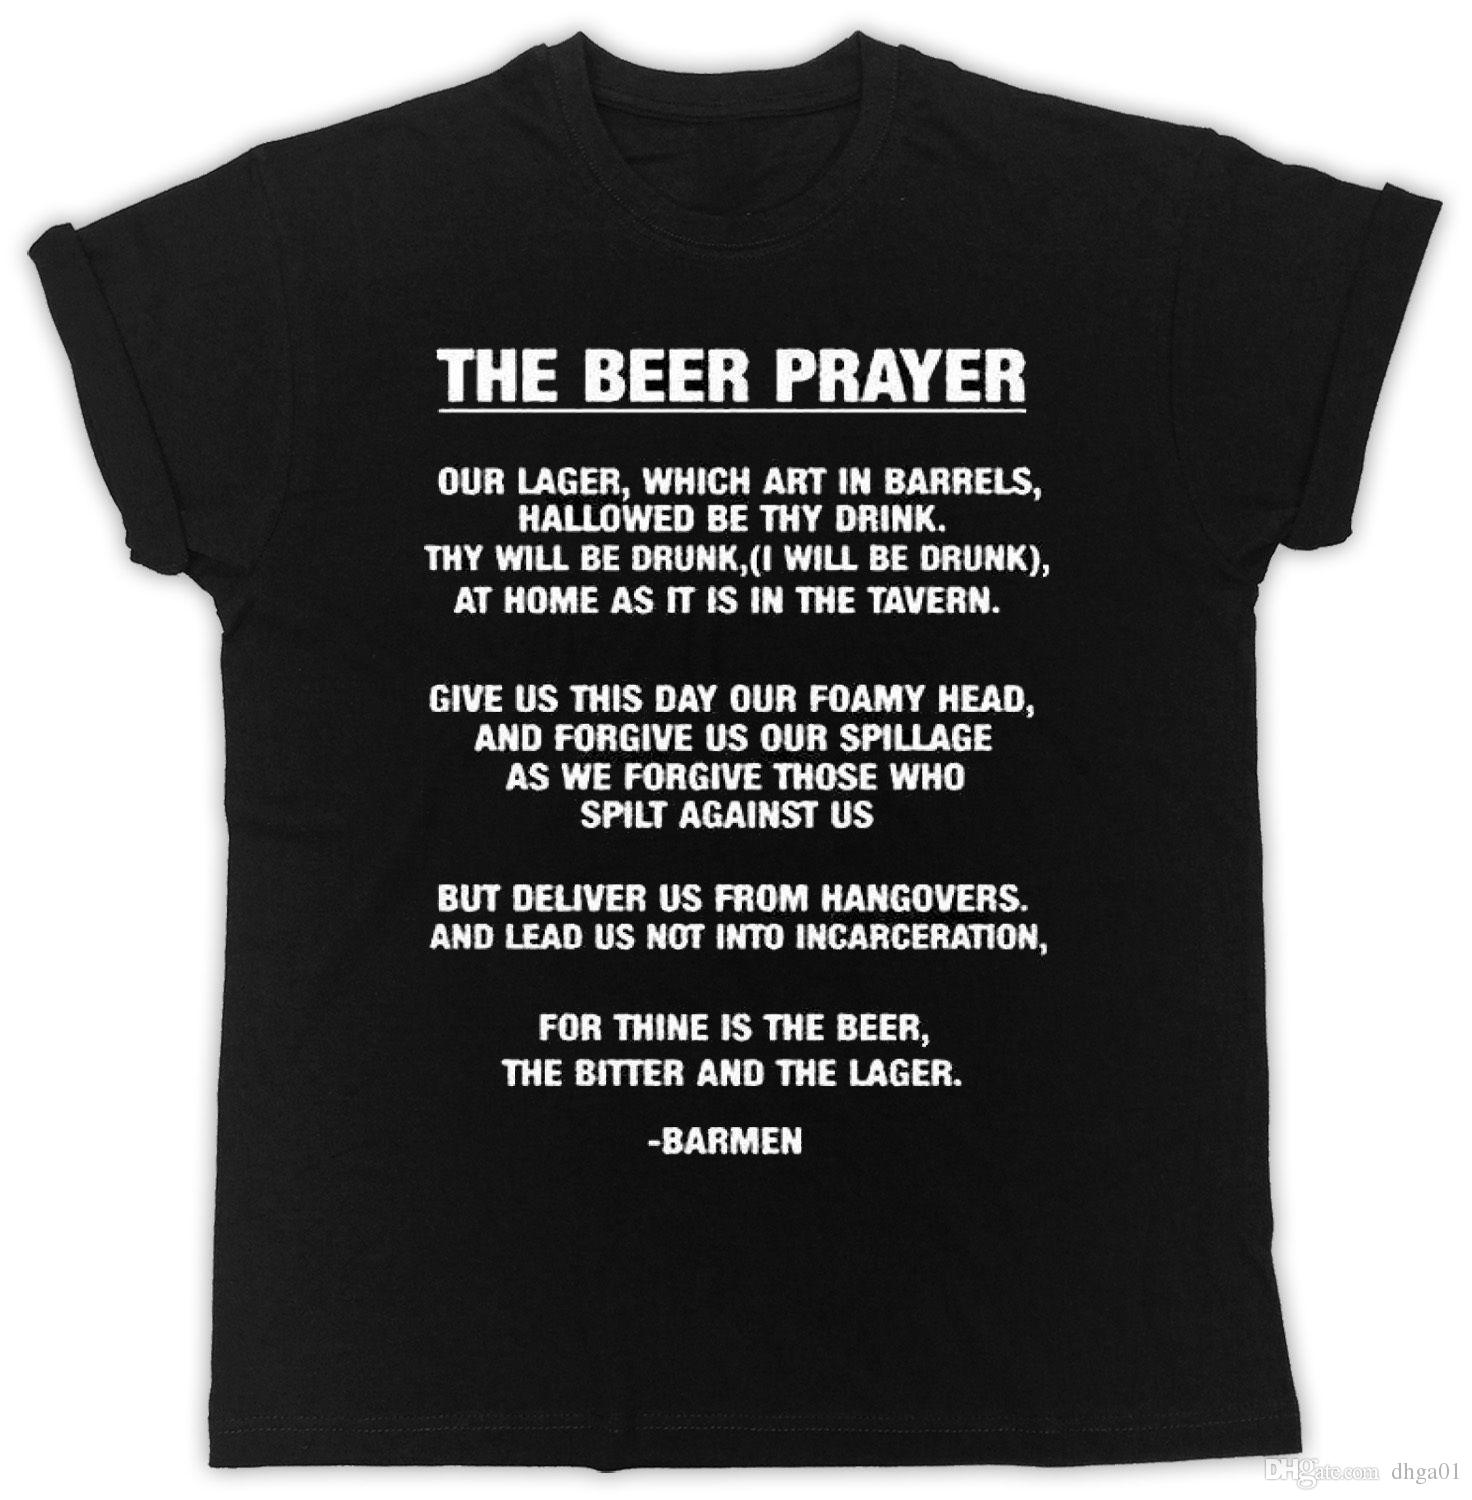 221f315db5 Beer Prayer T Shirt Drinking Funny Novelty Ideal Gift Pub Fun Unisex T  Shirt T Shirt Gift More Size And Colors Top Tee Political T Shirts Cotton T  Shirt ...